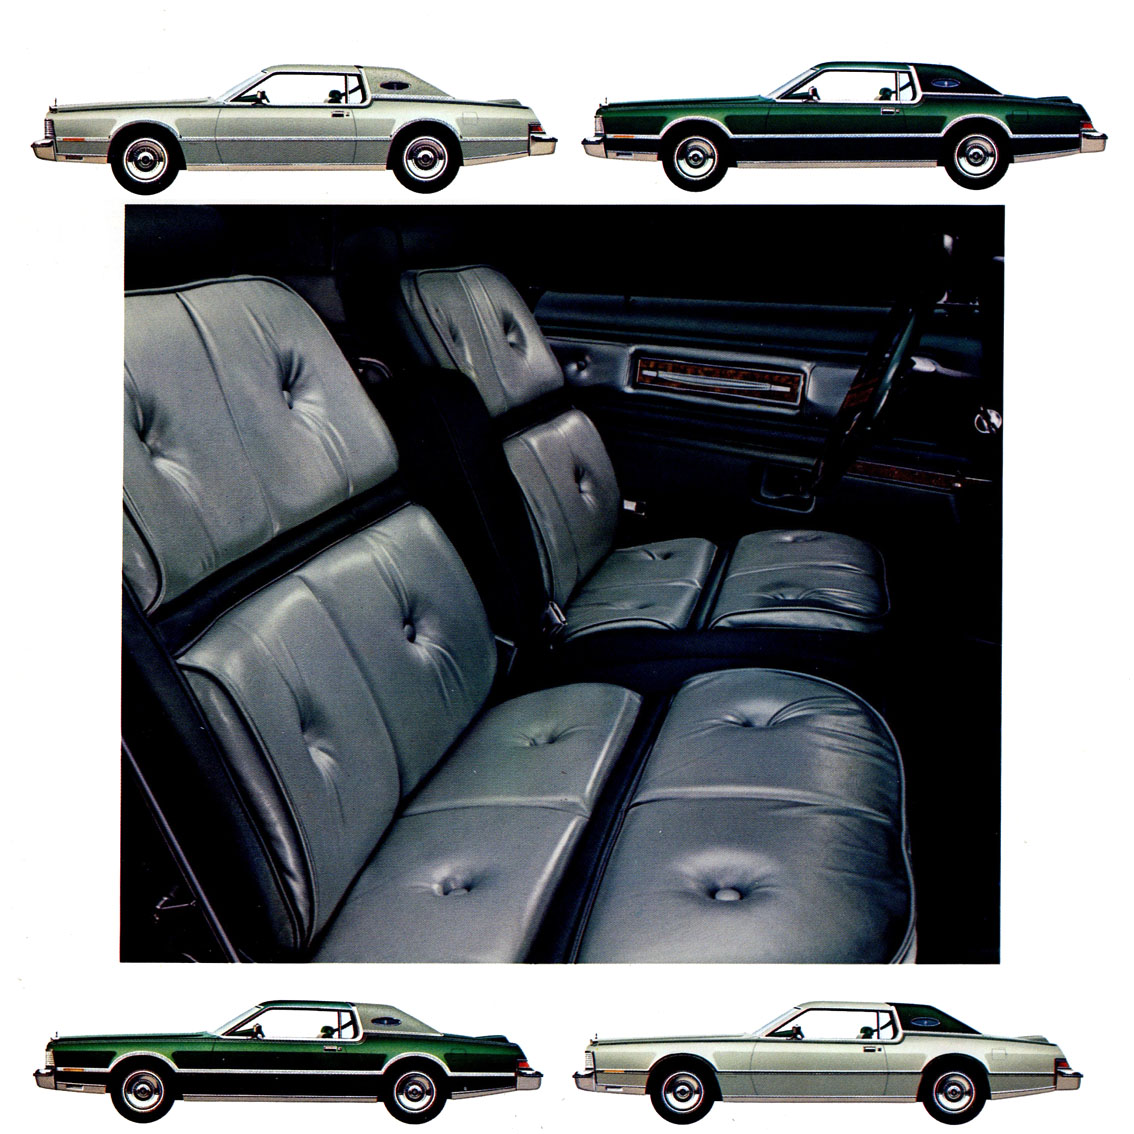 lincoln continental parts lincoln continental accessories autos post. Black Bedroom Furniture Sets. Home Design Ideas